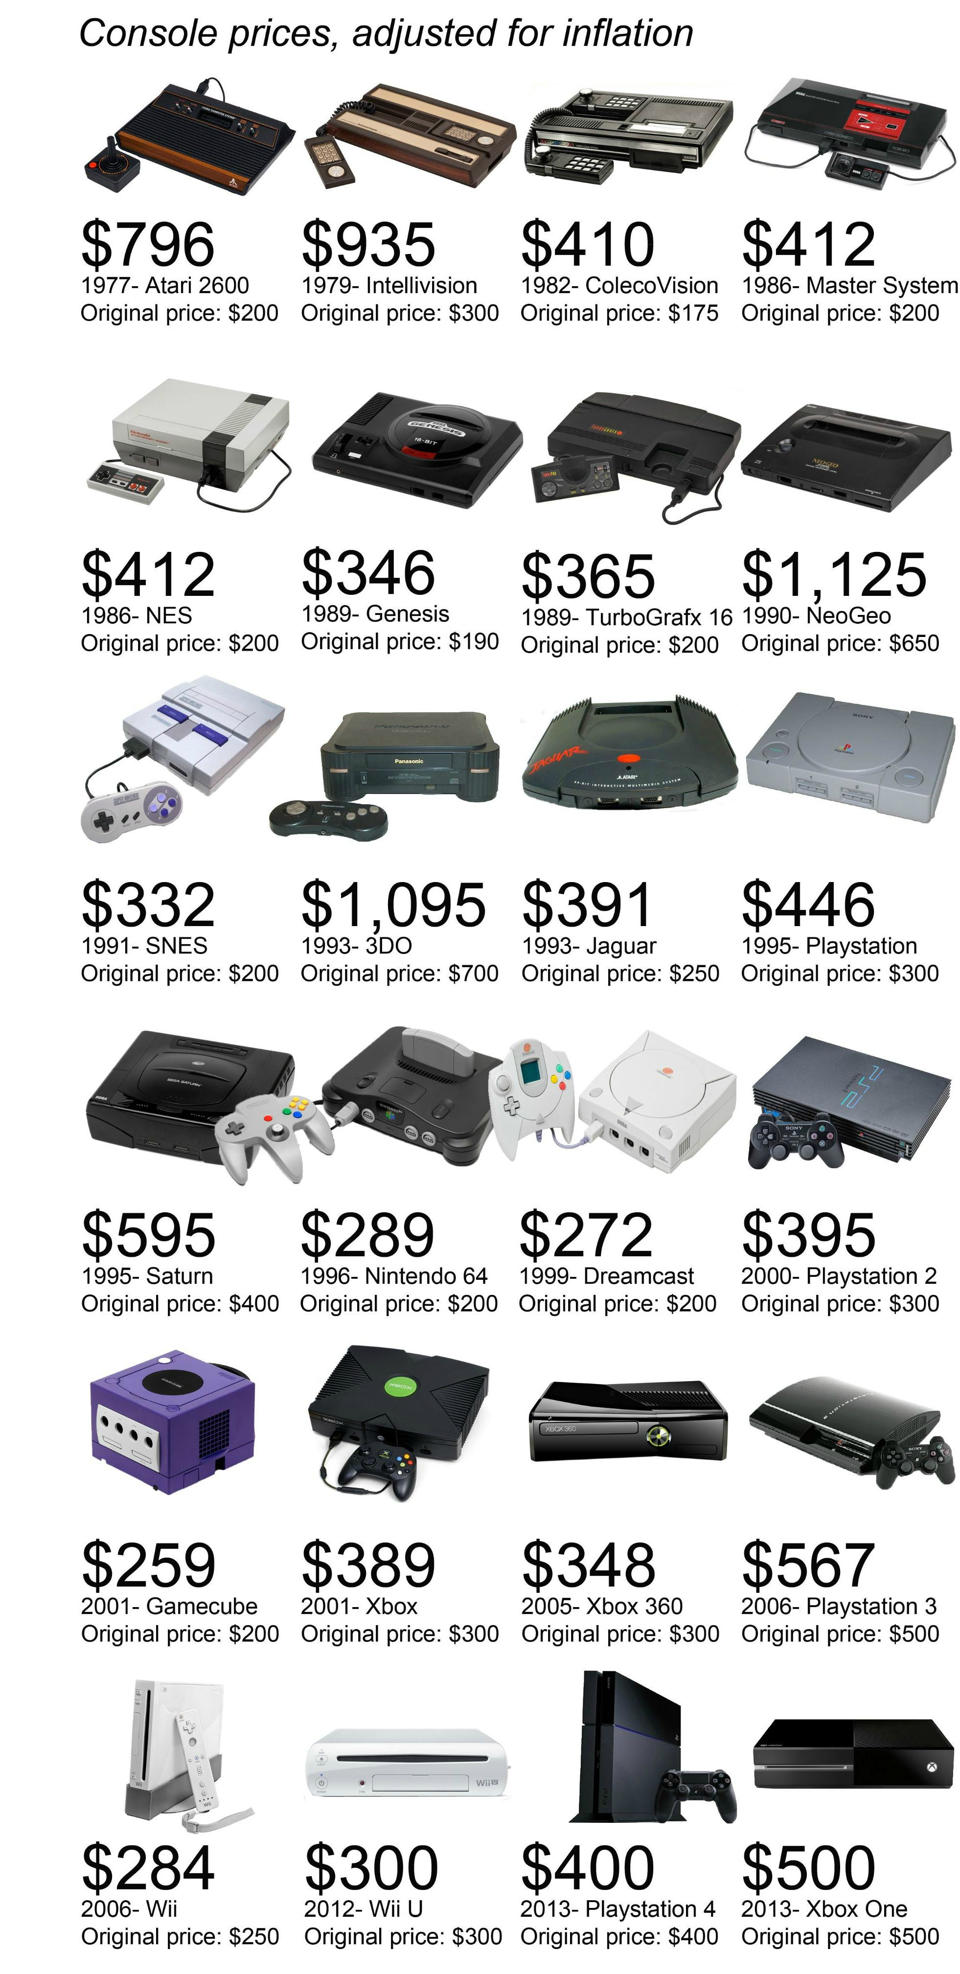 Inflation-adjusted video game console prices throughout history ...